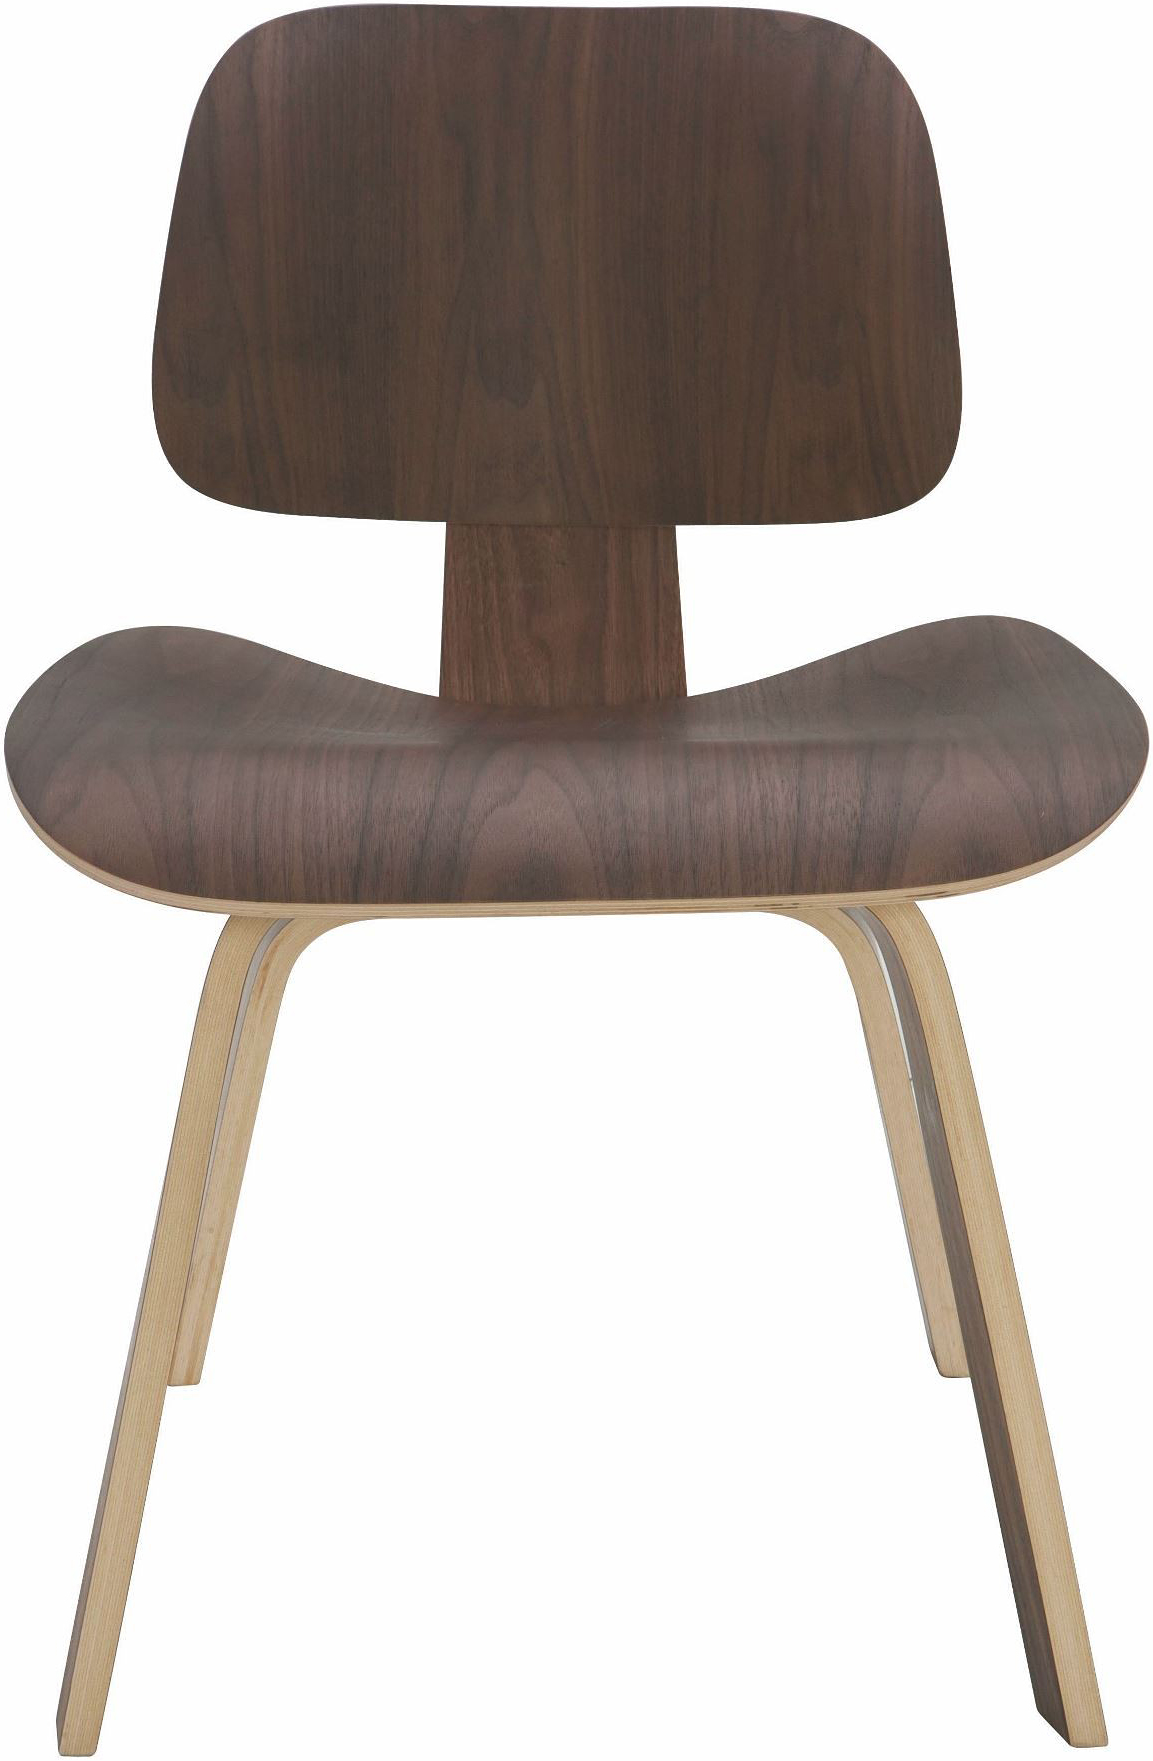 sophie dining chair in walnut finish